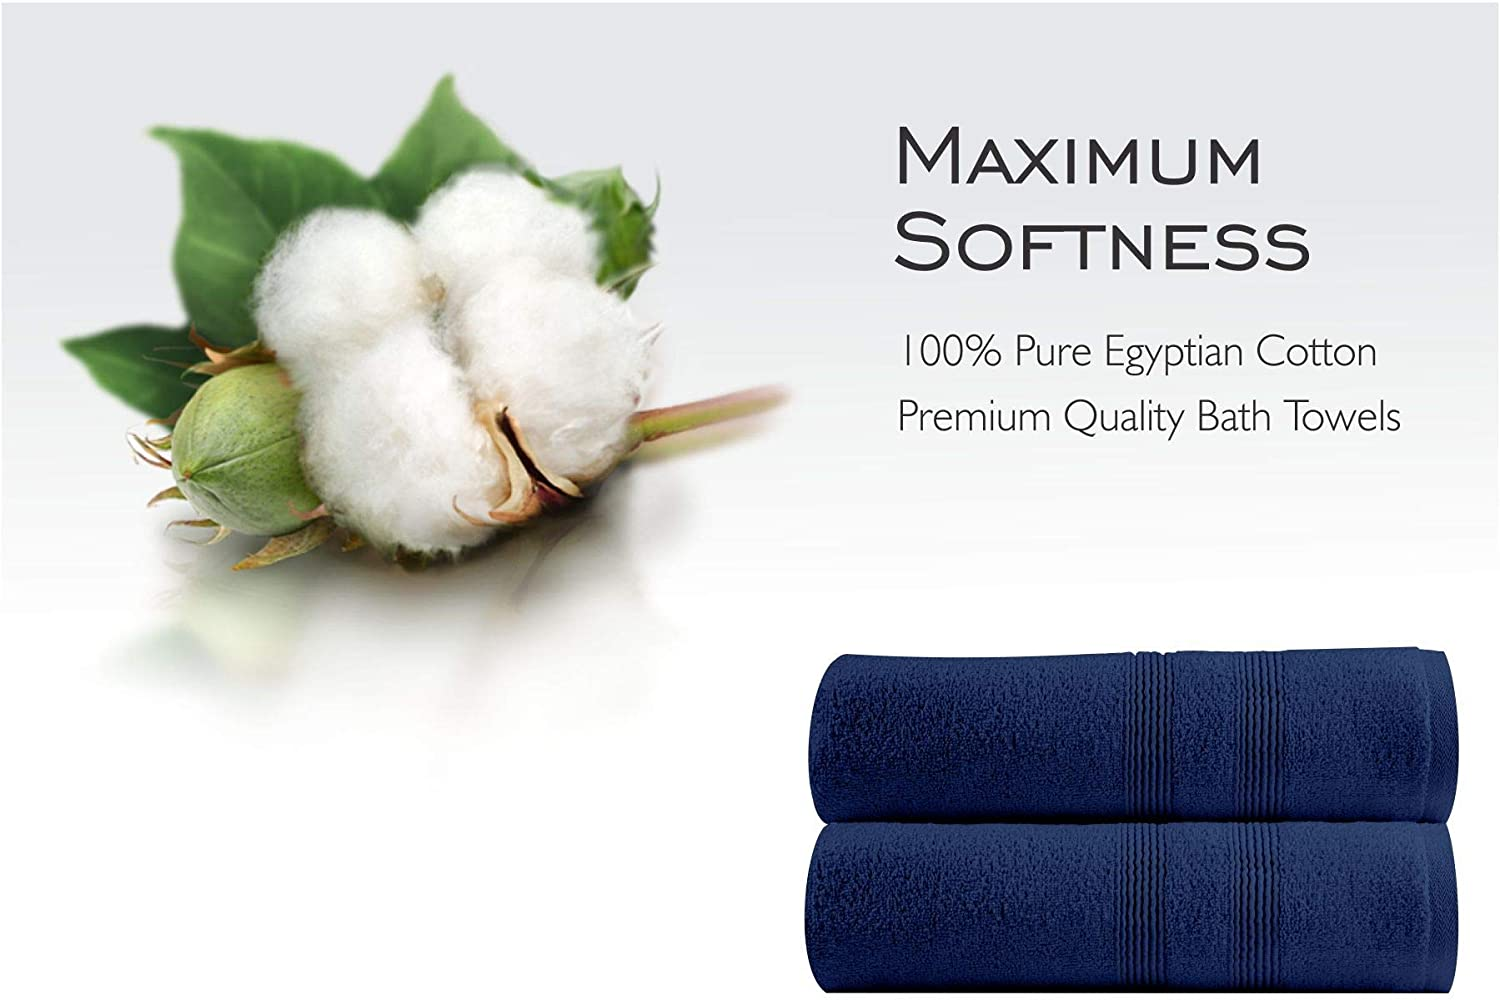 Quick Dry Premium 500 GSM 100/% Egyptian Cotton Highly Absorbent 2 Hand Towels Soft Feel Hand Towel Pack Towels Set Craft Native White, 2 Hand Towels